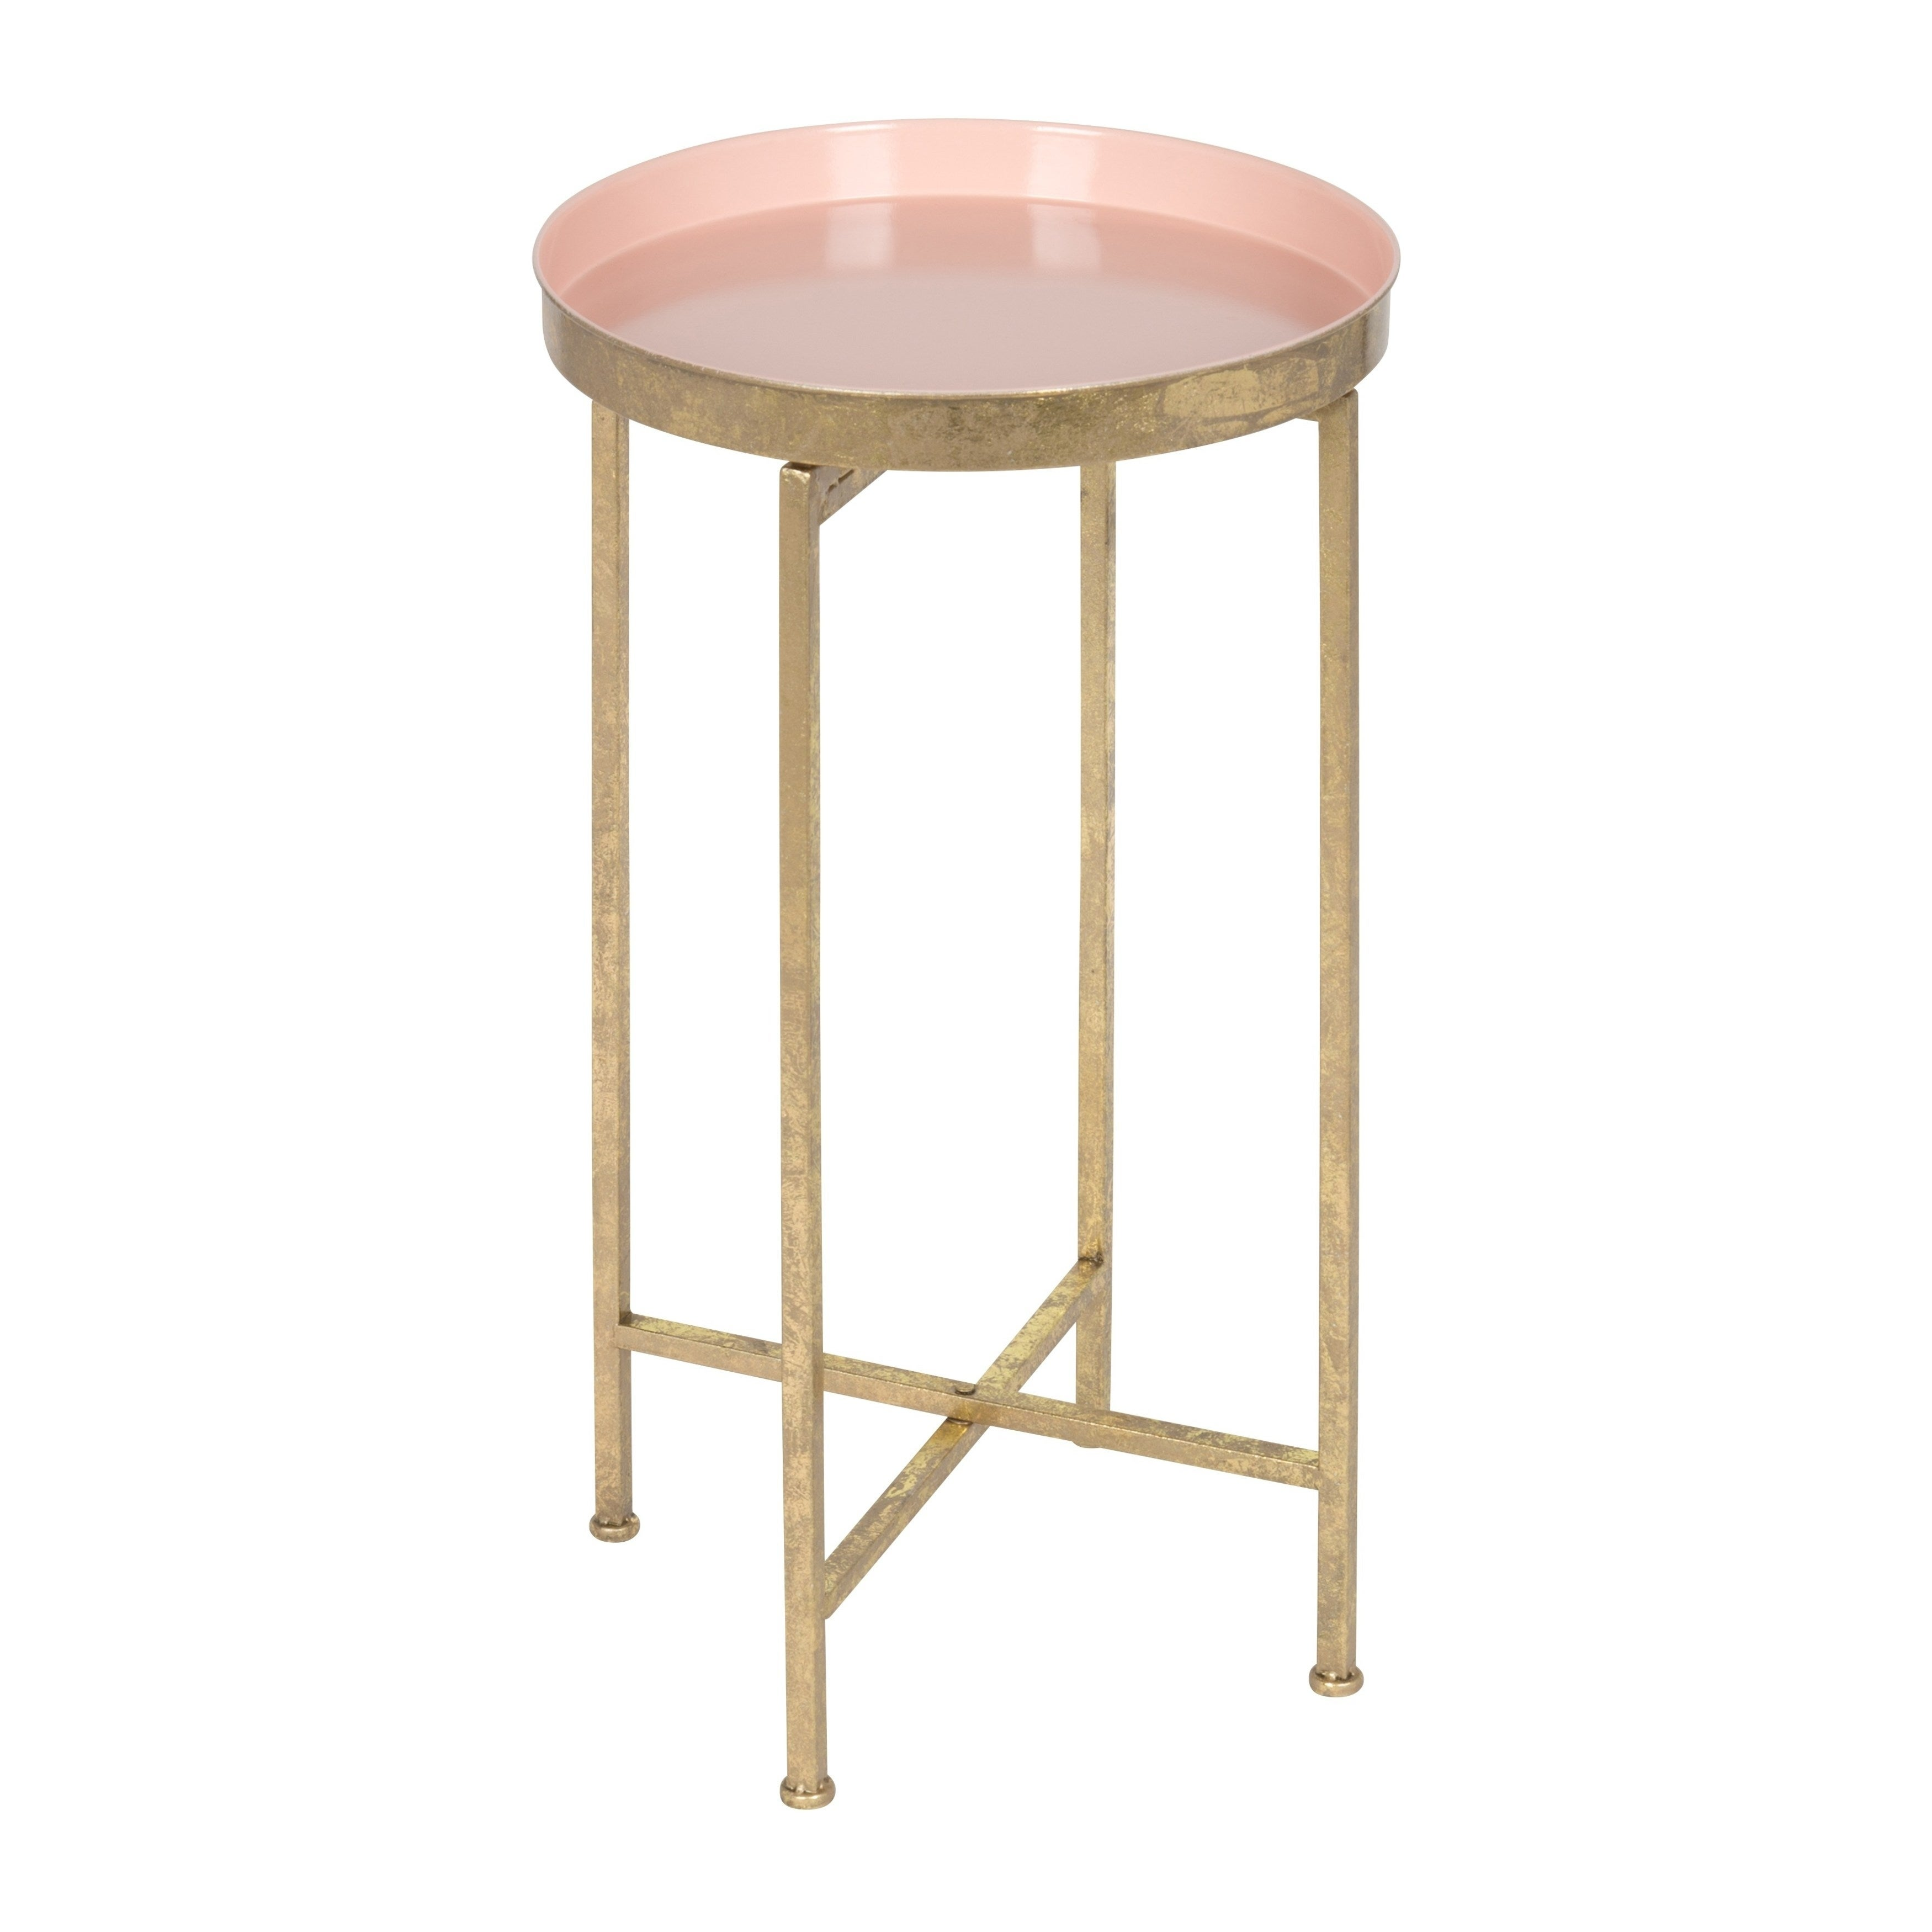 Kate And Laurel Celia Round Metal Foldable Tray Accent Table (Option: Pink)